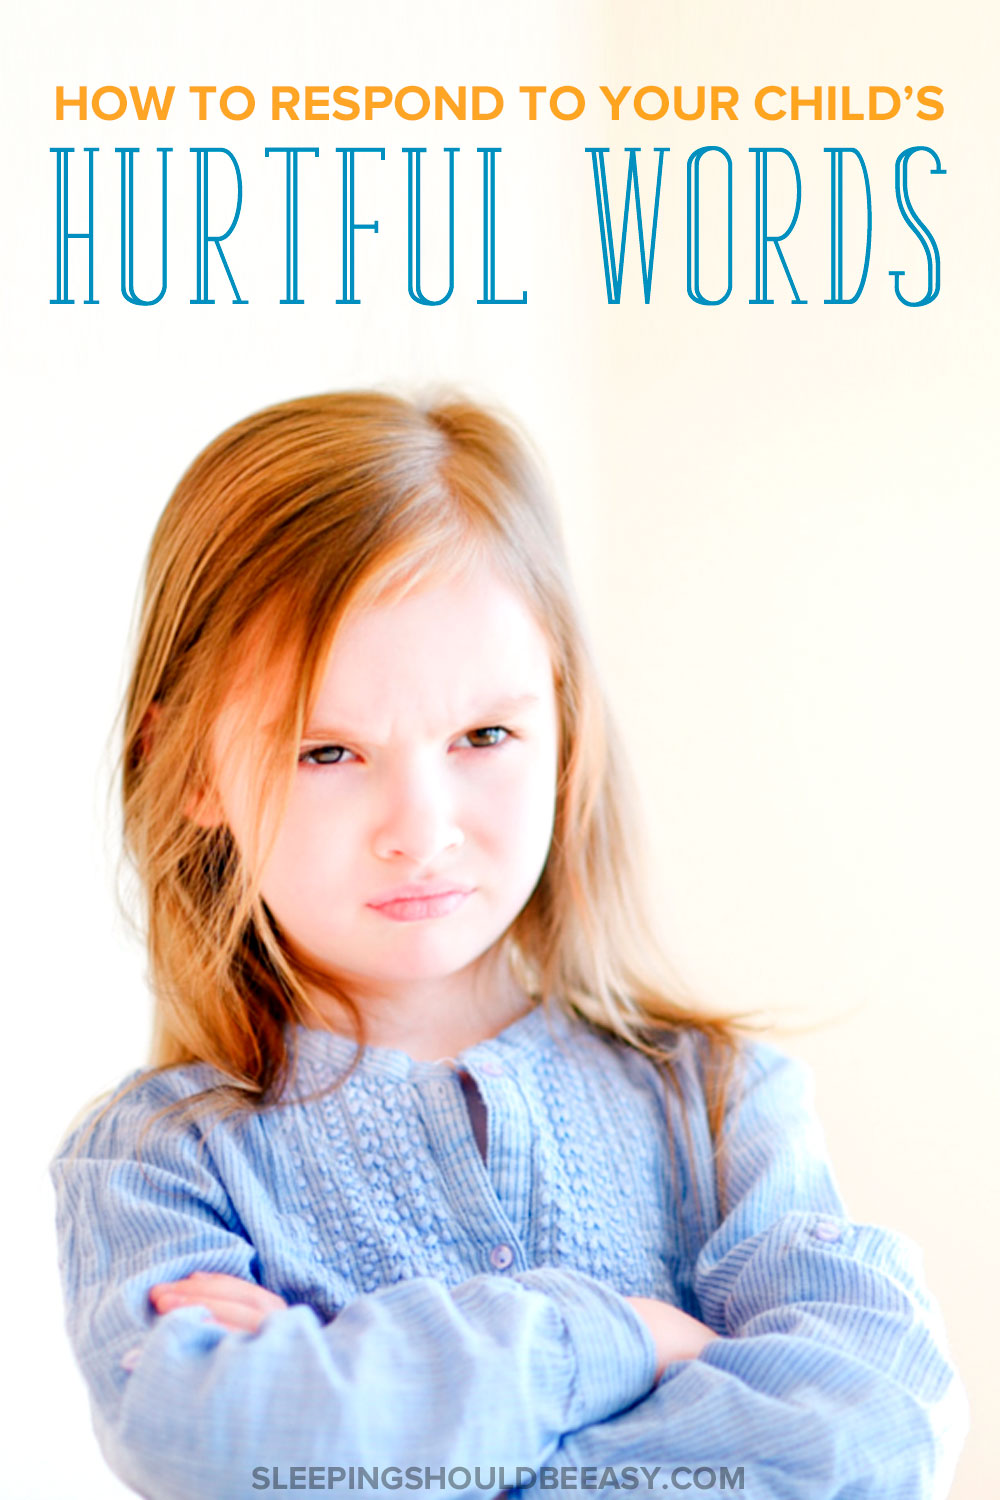 How to respond when your child says hurtful things to you